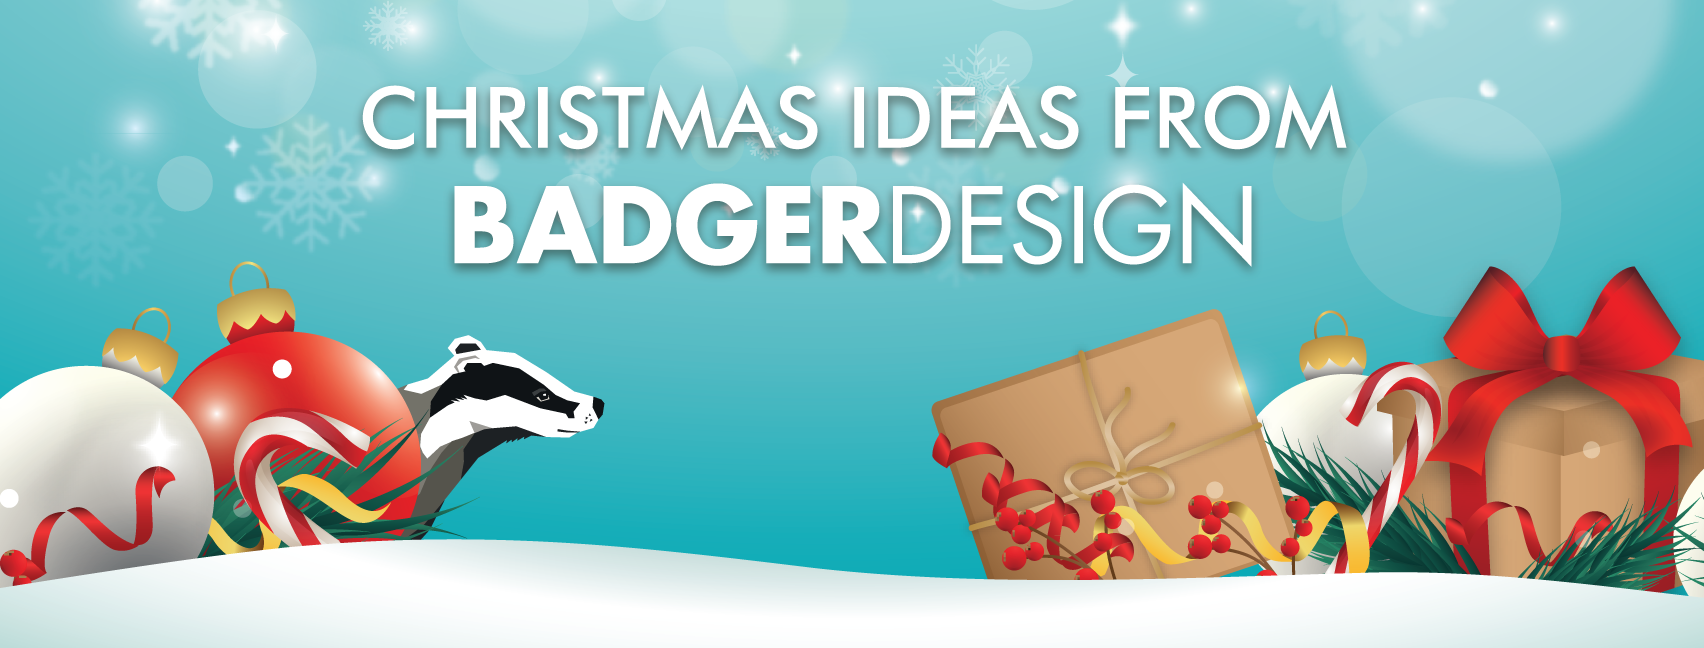 Christmas ideas from Badger Design